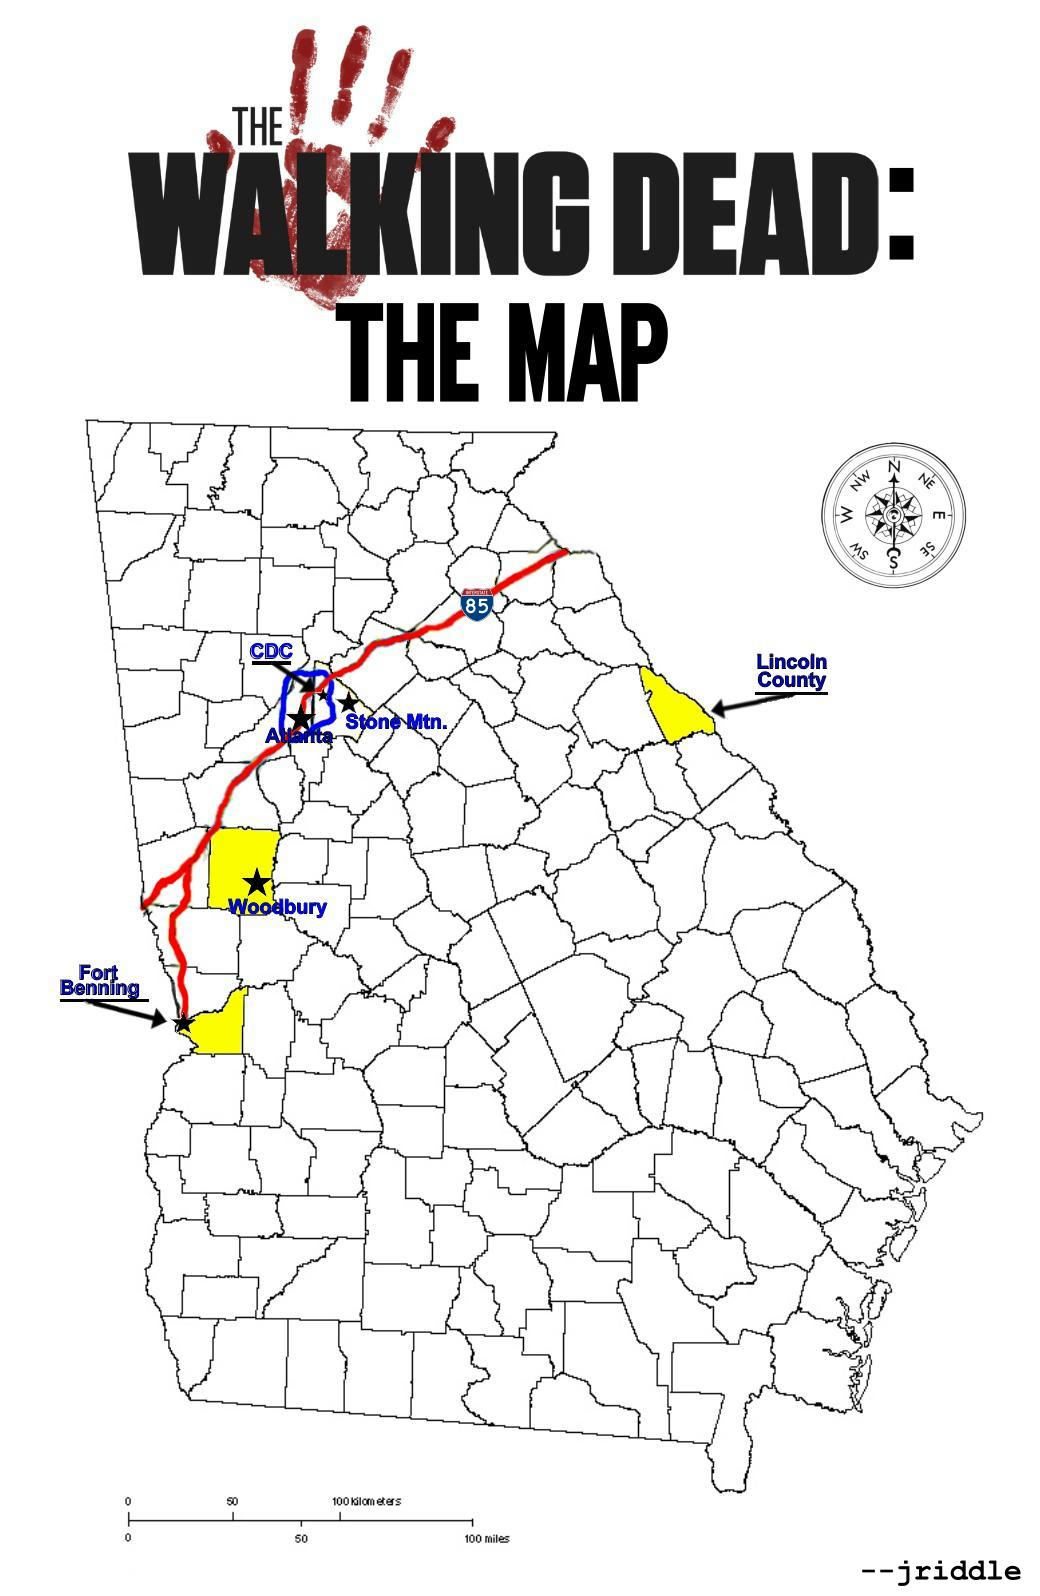 THE DIG: The Geography of THE WALKING DEAD King County Georgia Map on ga county map, highway 17 georgia map, georgia country map, rural georgia map, atlanta georgia map, king s bay on map ga, clay county wv tax map, hot springs georgia map, west cobb georgia map, chattahoochee river georgia map, meriwether co ga map, guthrie georgia map, cobb county school district map, washington co ga map, meriwether county parcel map, kings island georgia map, washington school district map, unincorporated orange county florida map, harris co ga map, grant county washington road map,